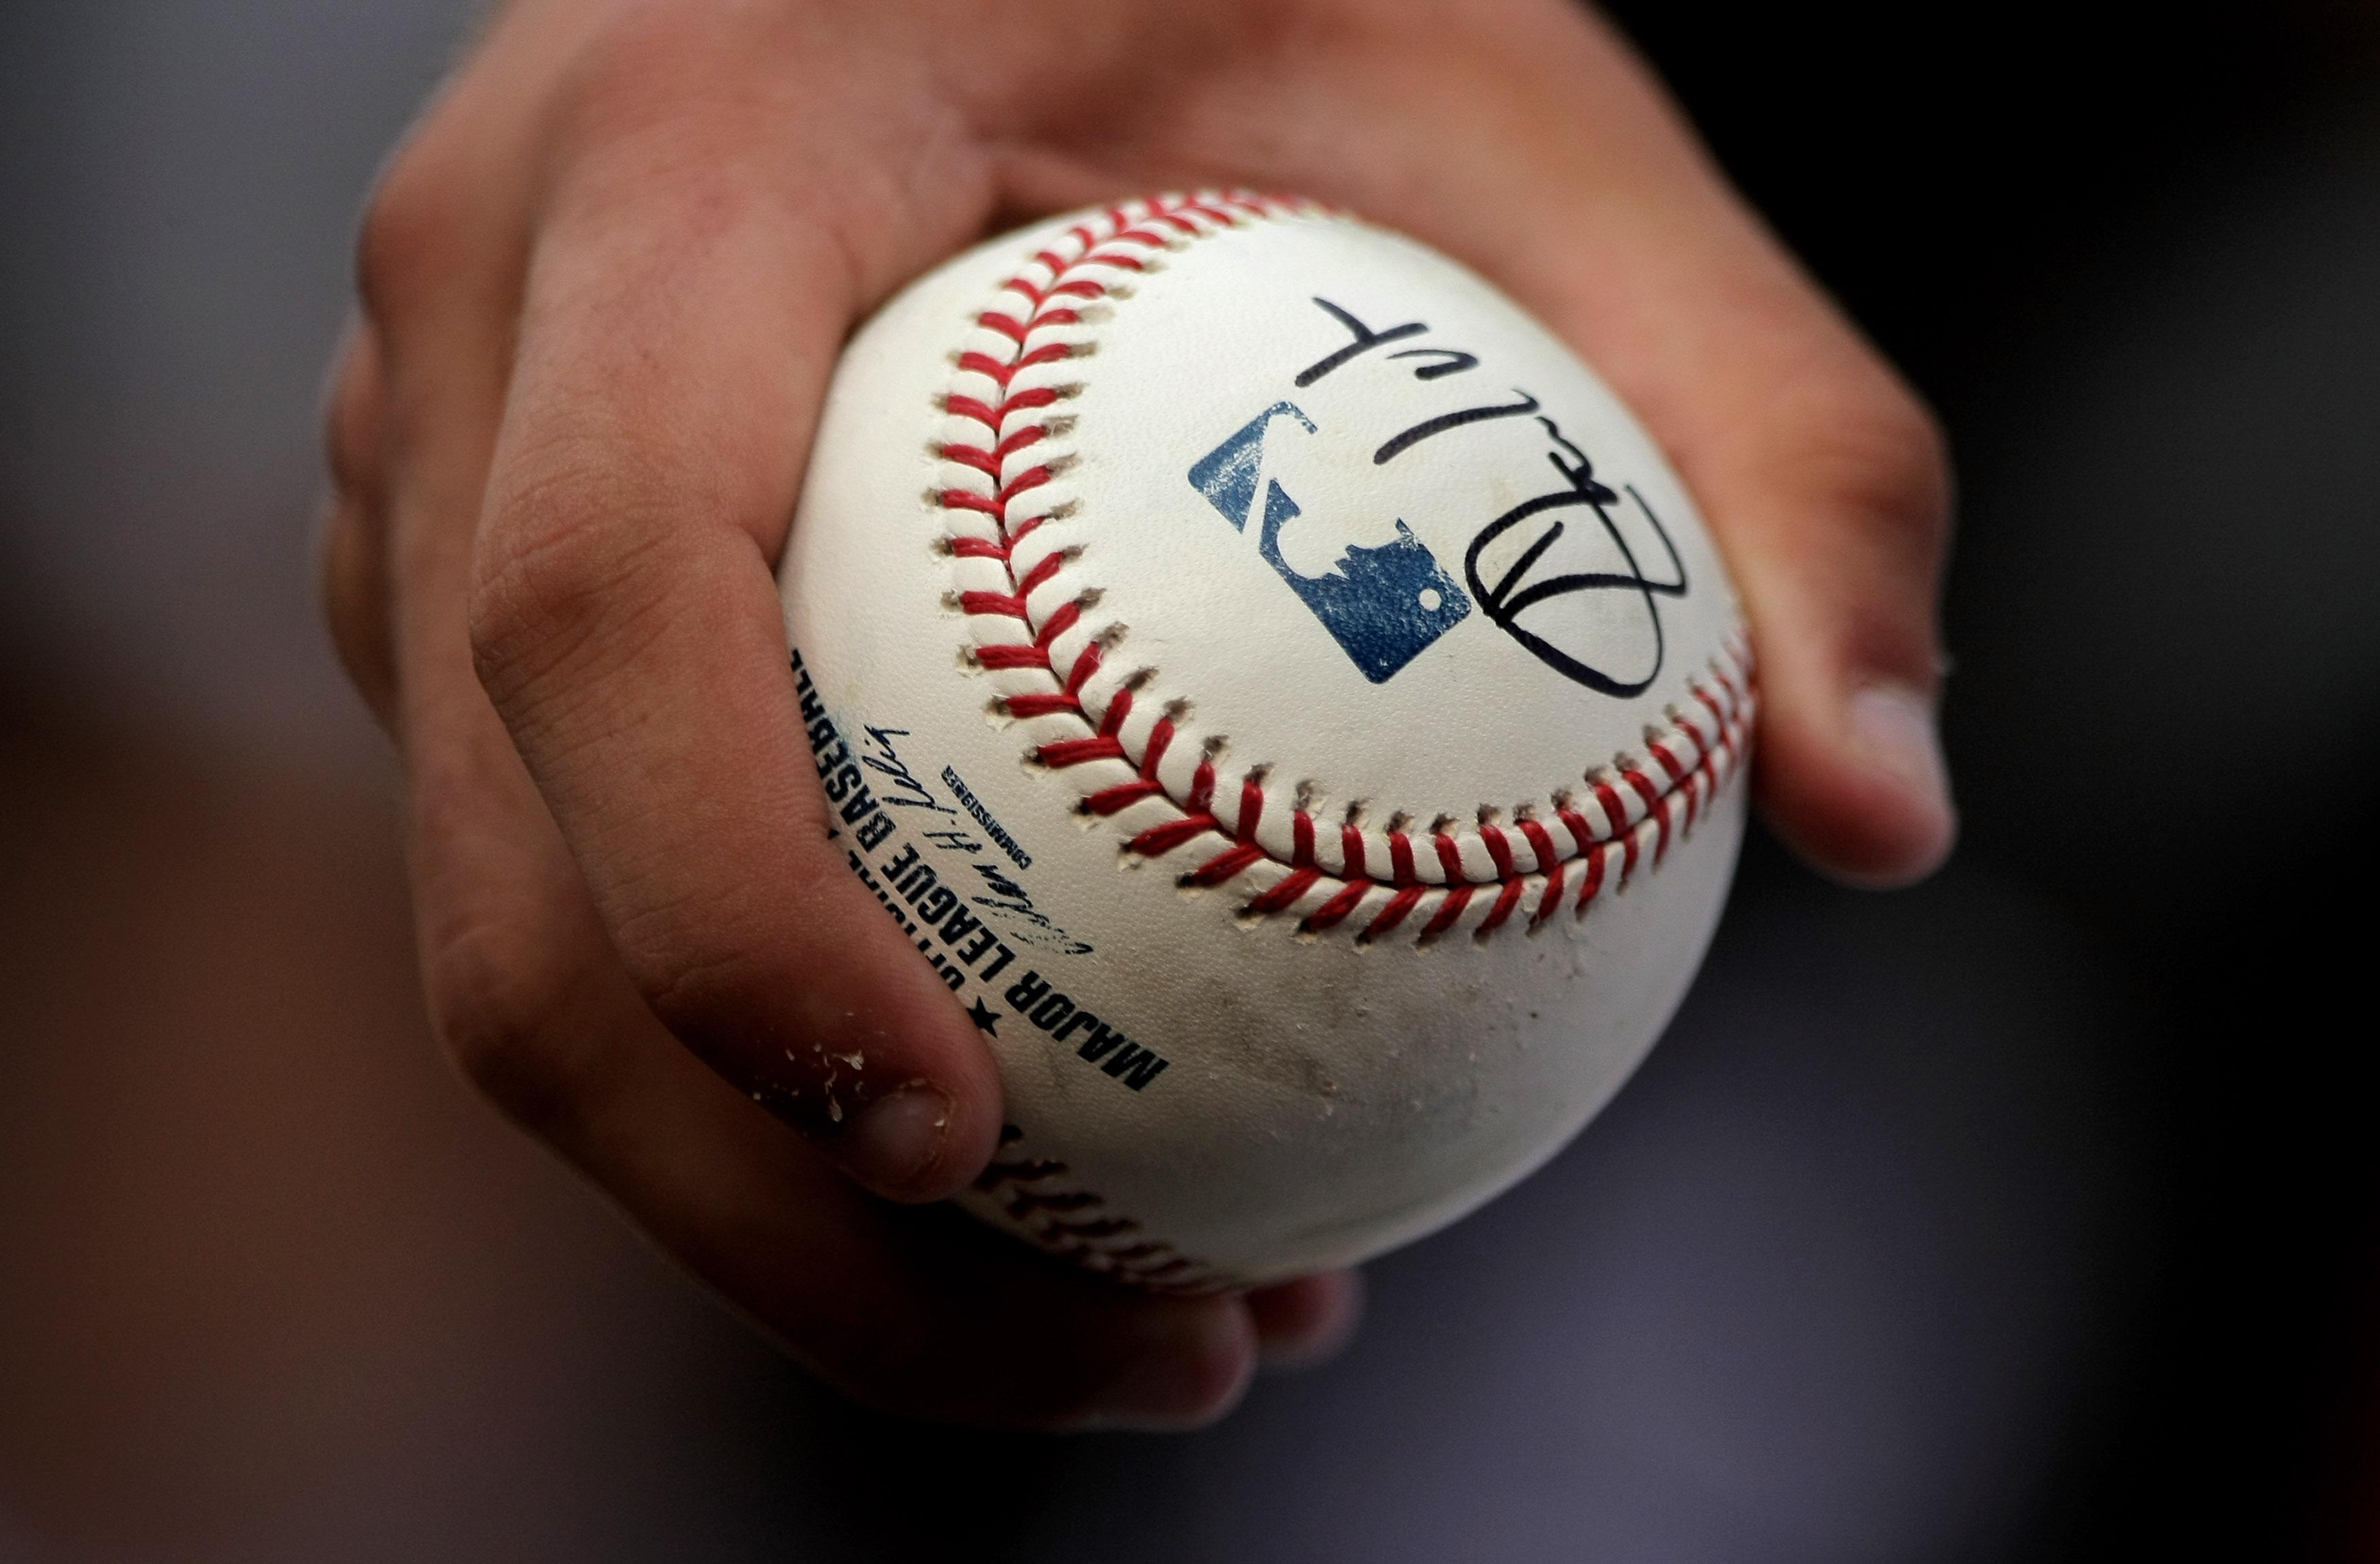 DENVER - MAY 06:  A fan holds a baseball the he got autgraphed at the game between the St. Louis Cardinals and the Colorado Rockies at Coors Field on May 6, 2008 in Denver, Colorado.  (Photo by Doug Pensinger/Getty Images)